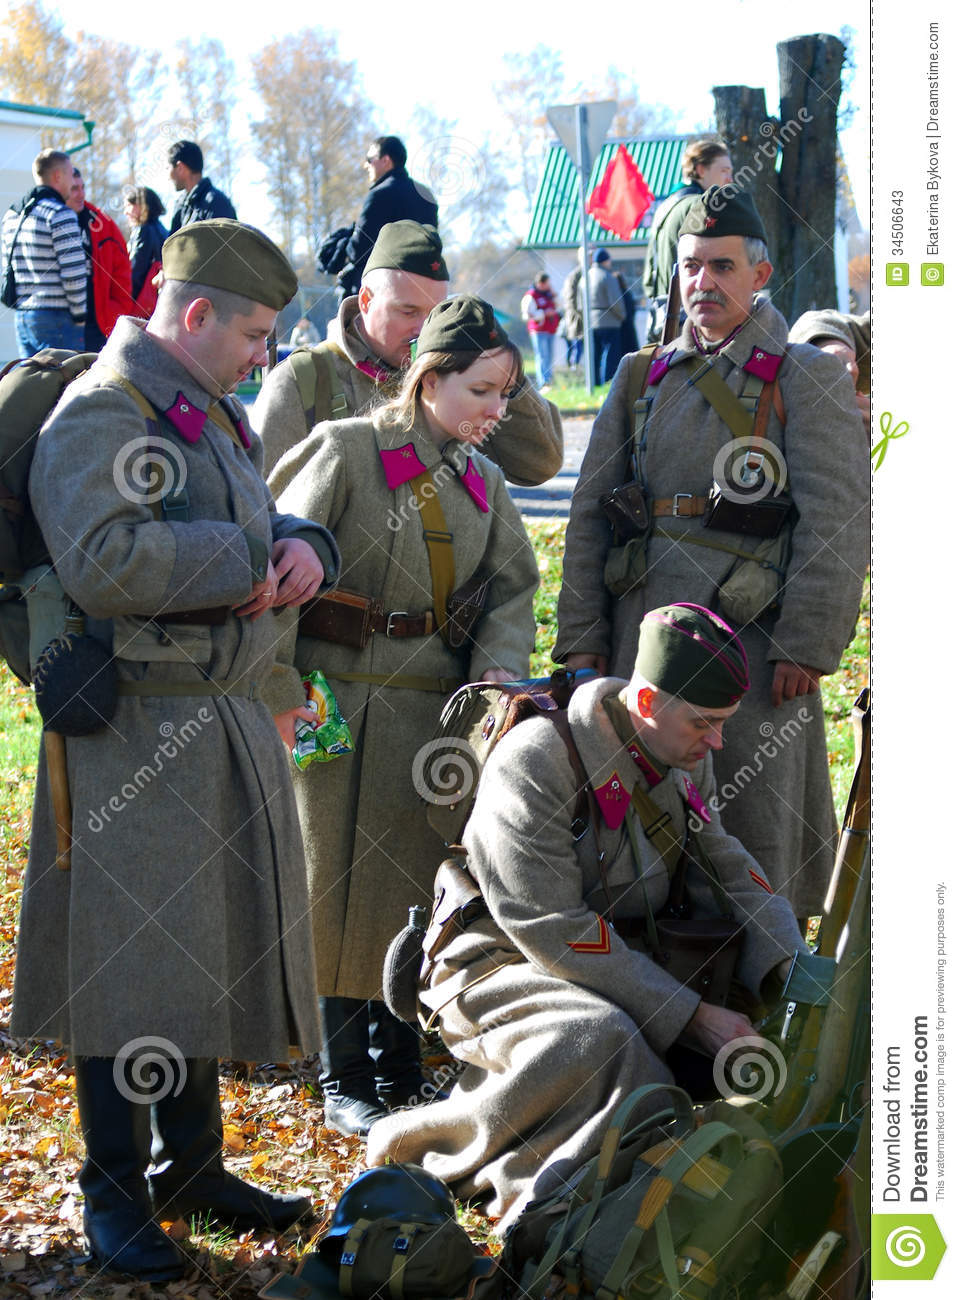 O To Ww Bing Comsquare Root 123: Russian Soldiers-reenactors Editorial Stock Photo